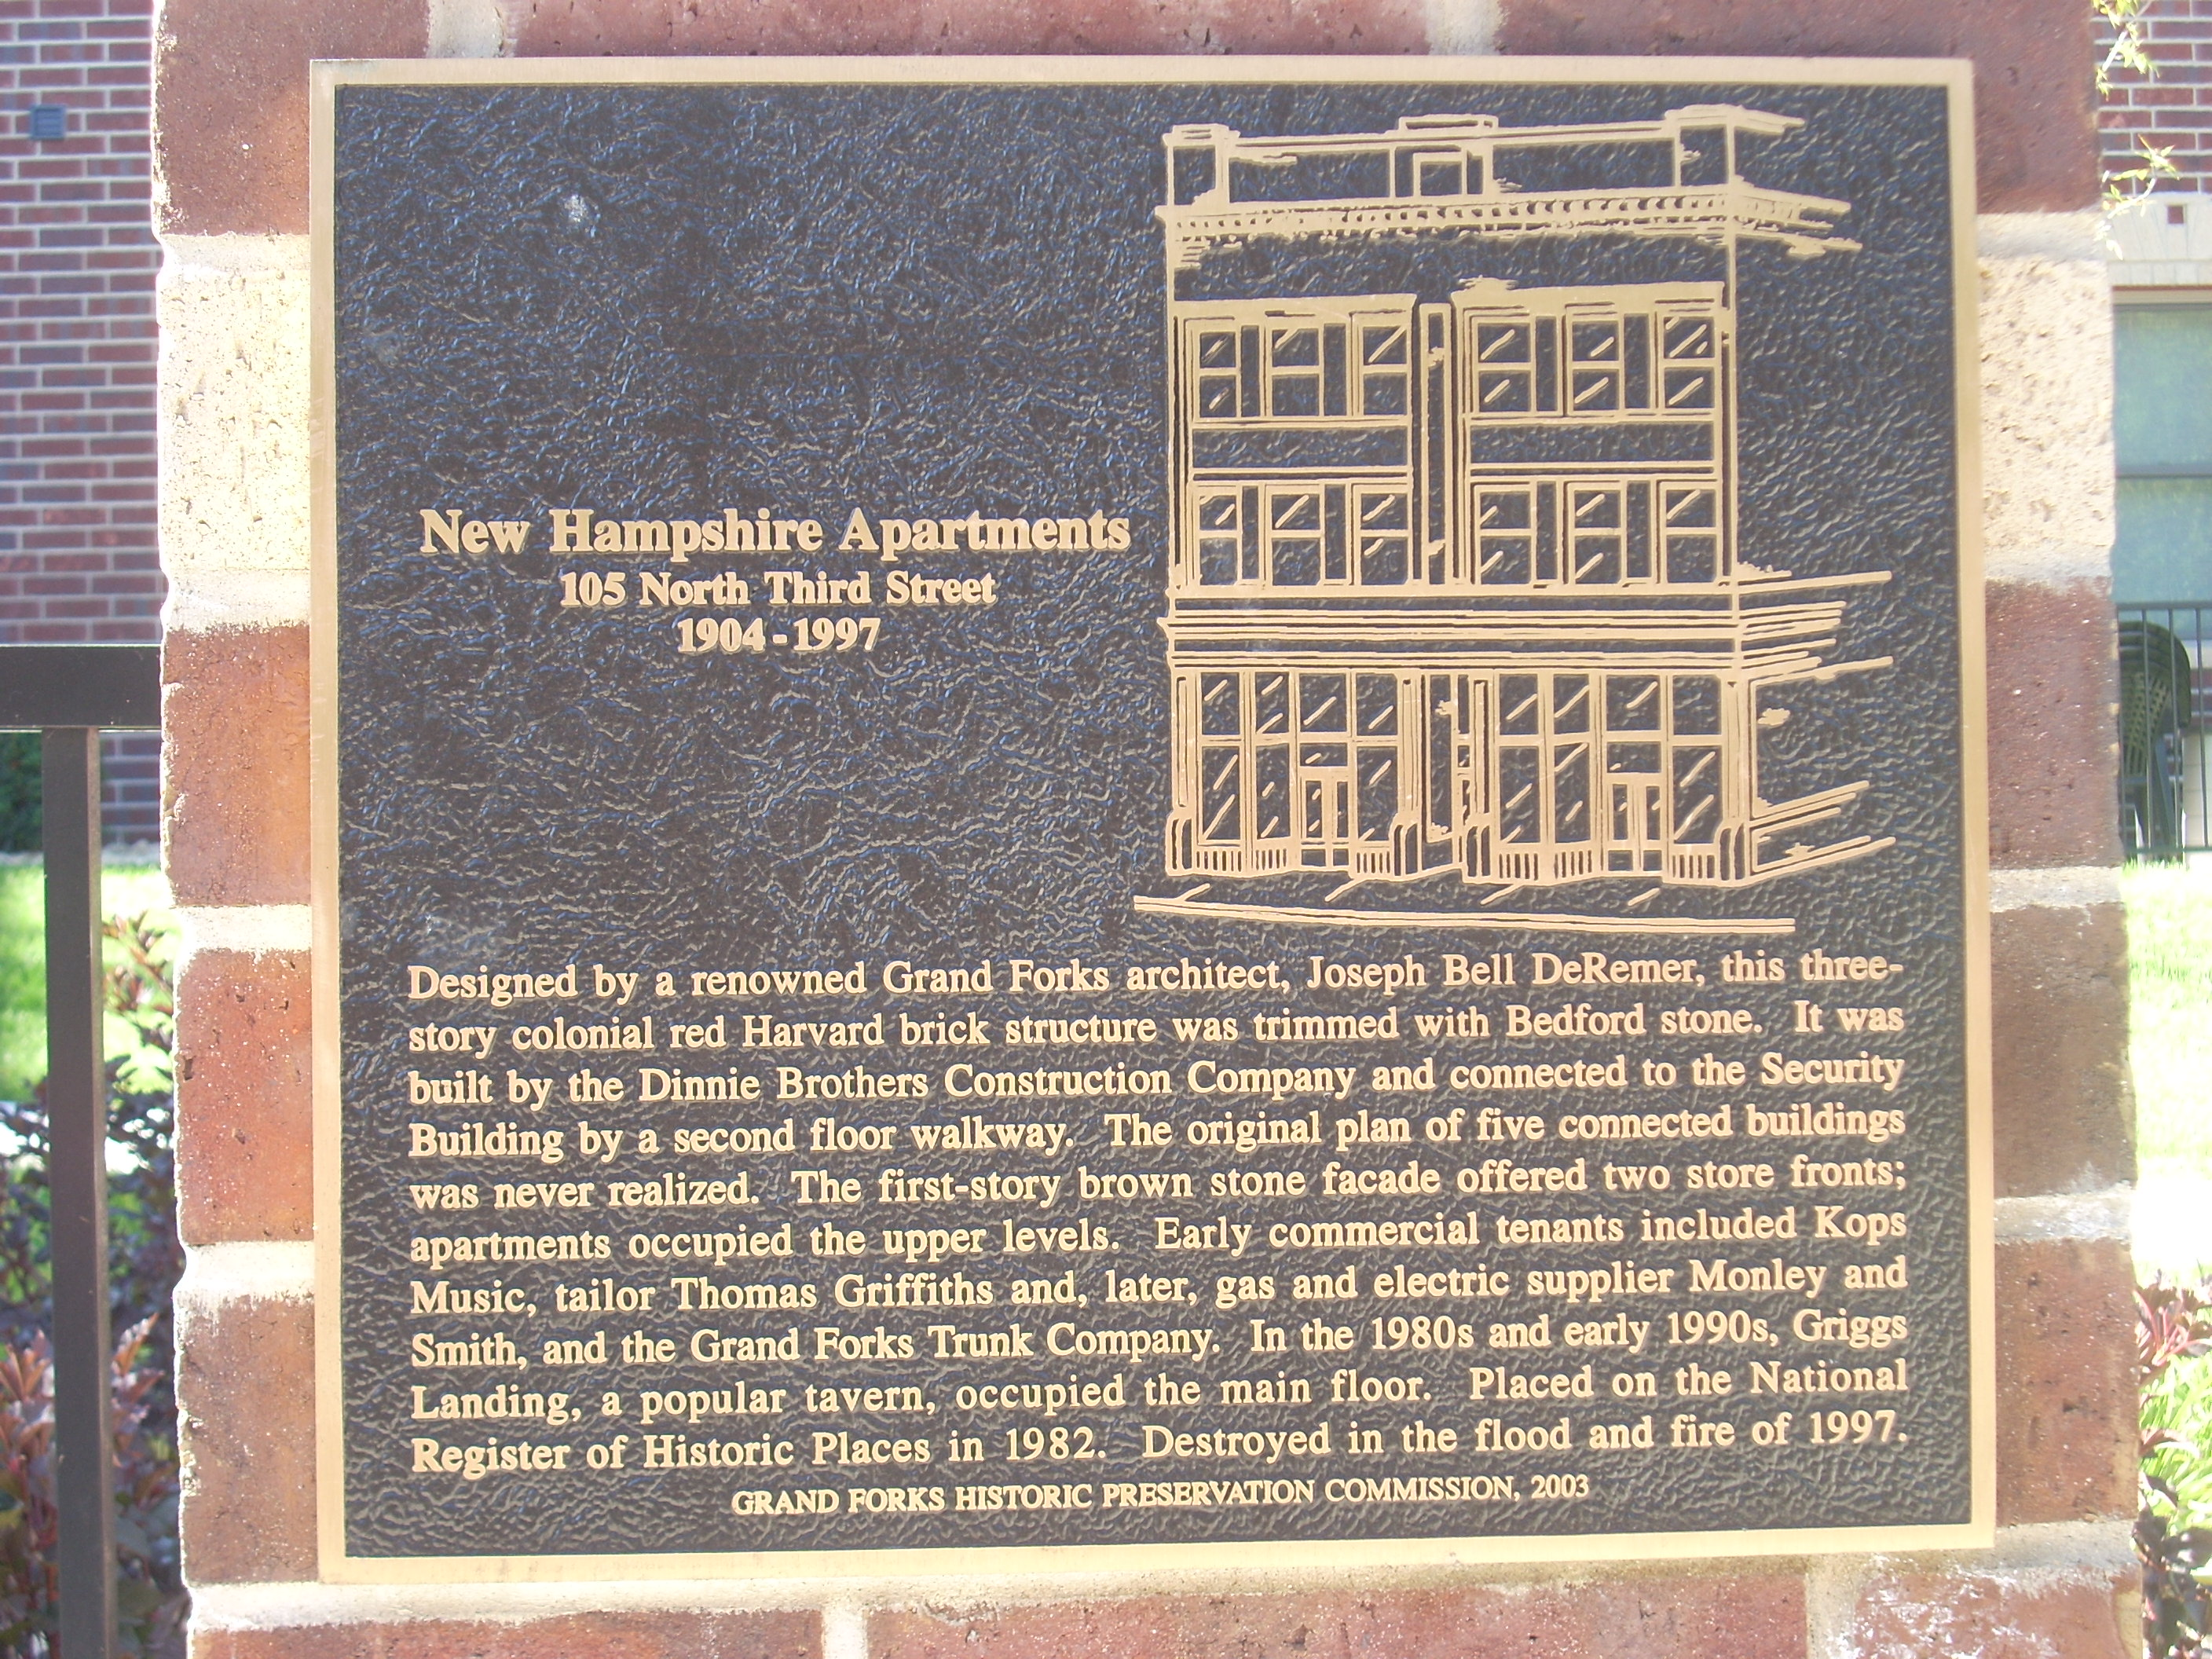 Historic Marker for the apartments. The marker sits where the apartments once stood.